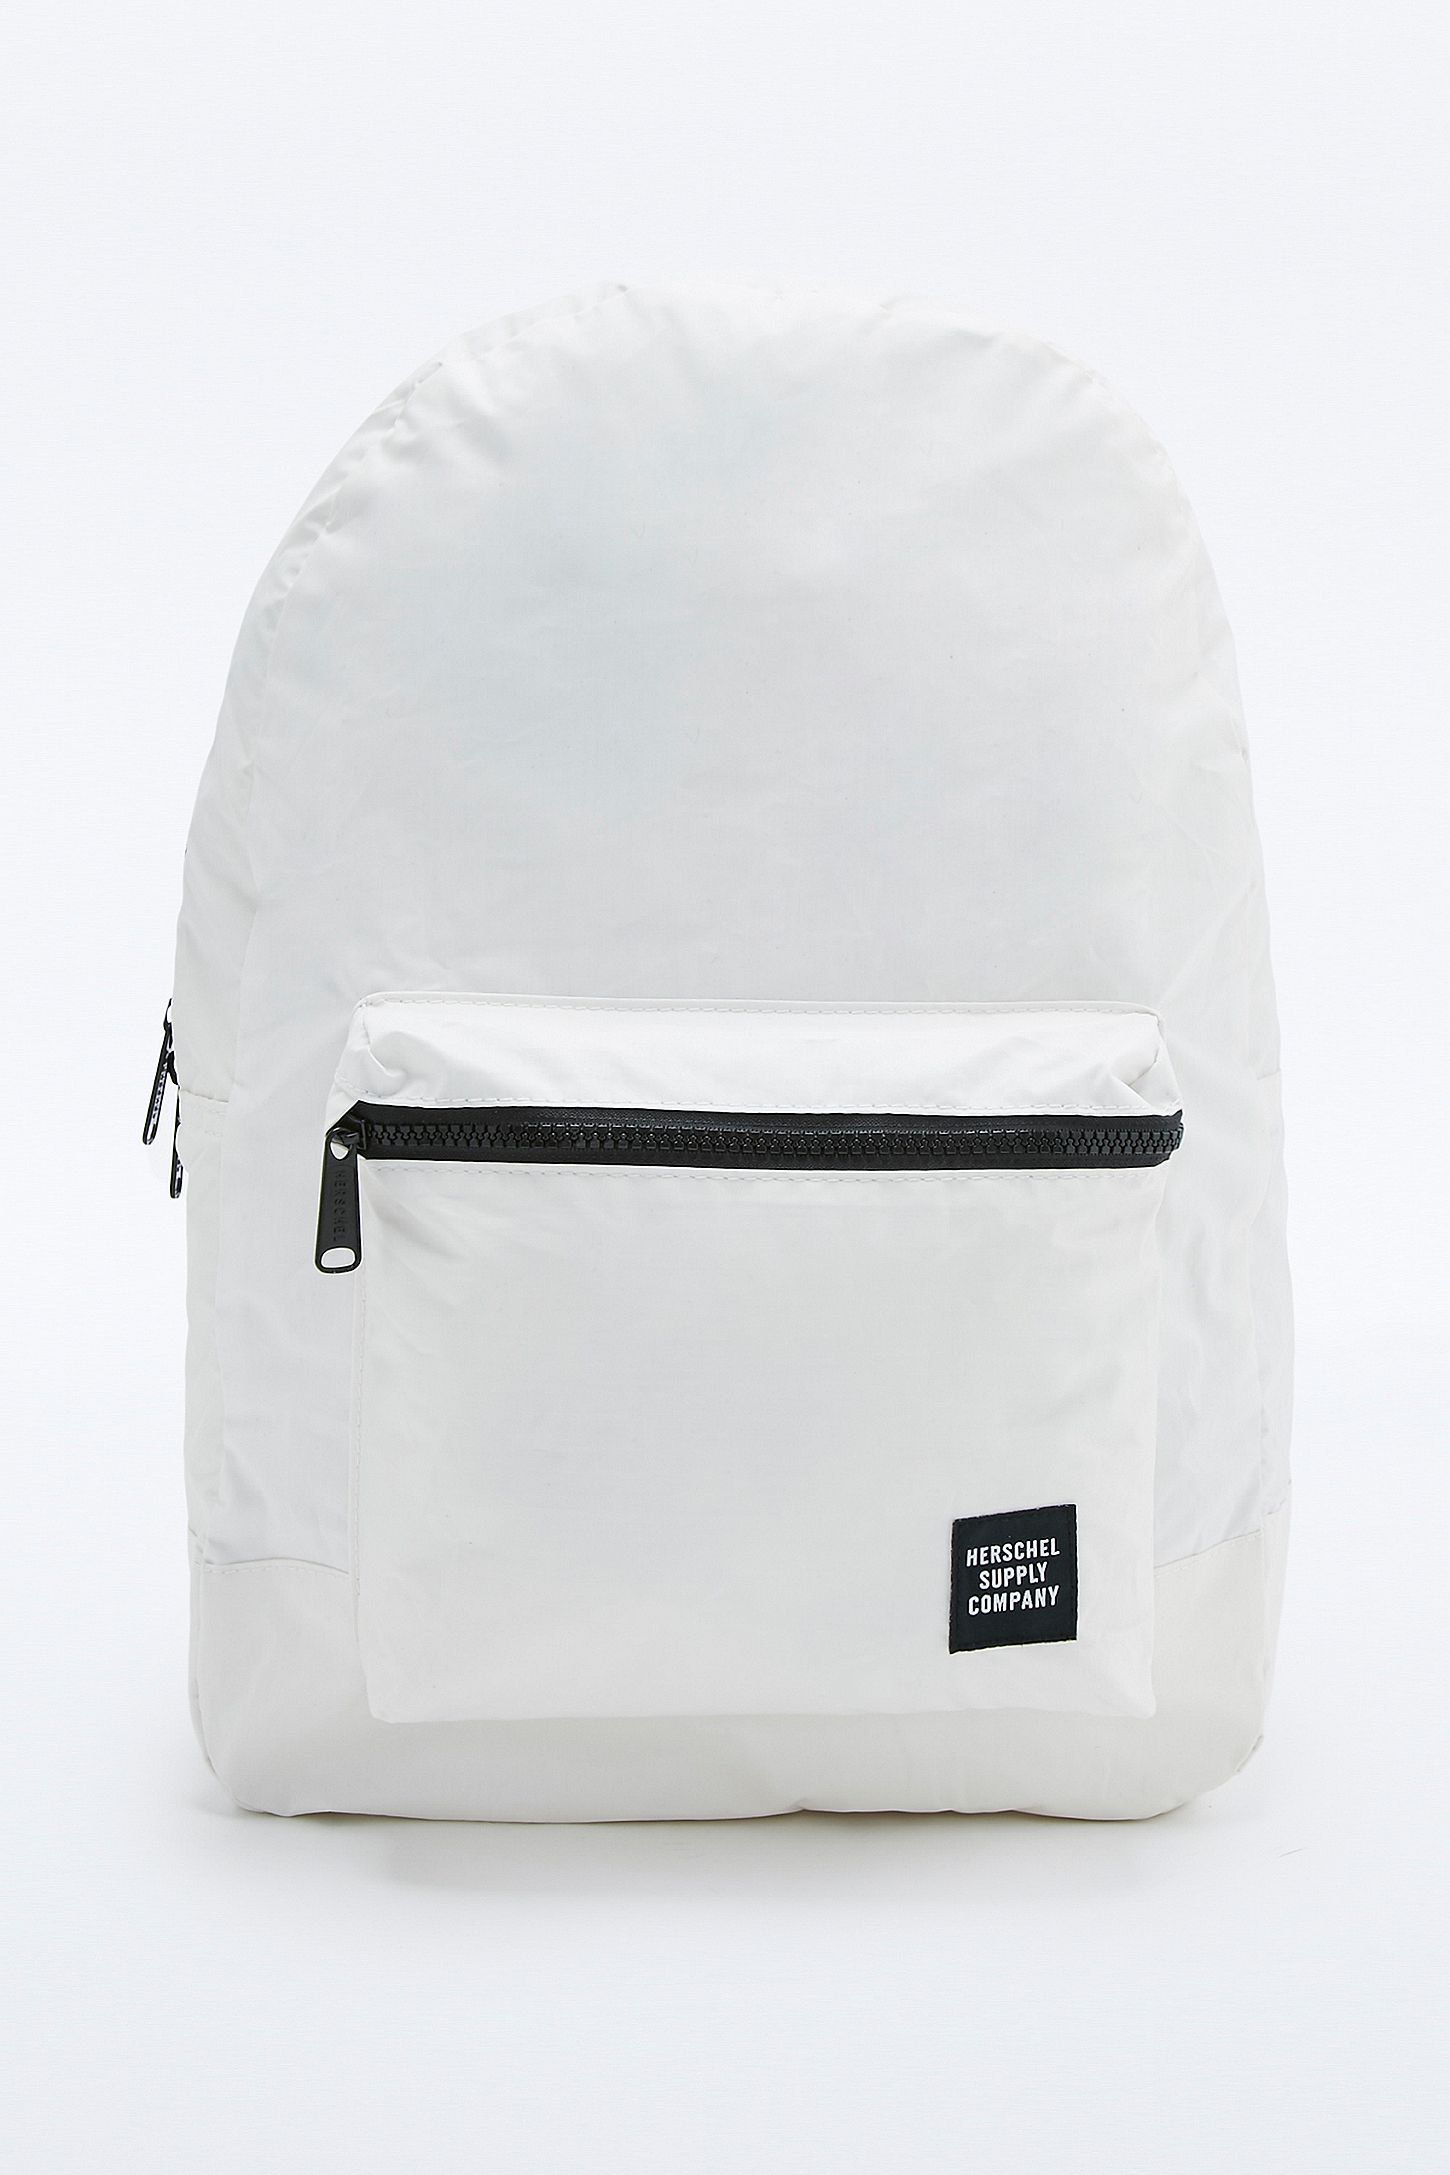 d113466afa3 Herschel Supply co. Day Night Packable Daypack White Reflective ...